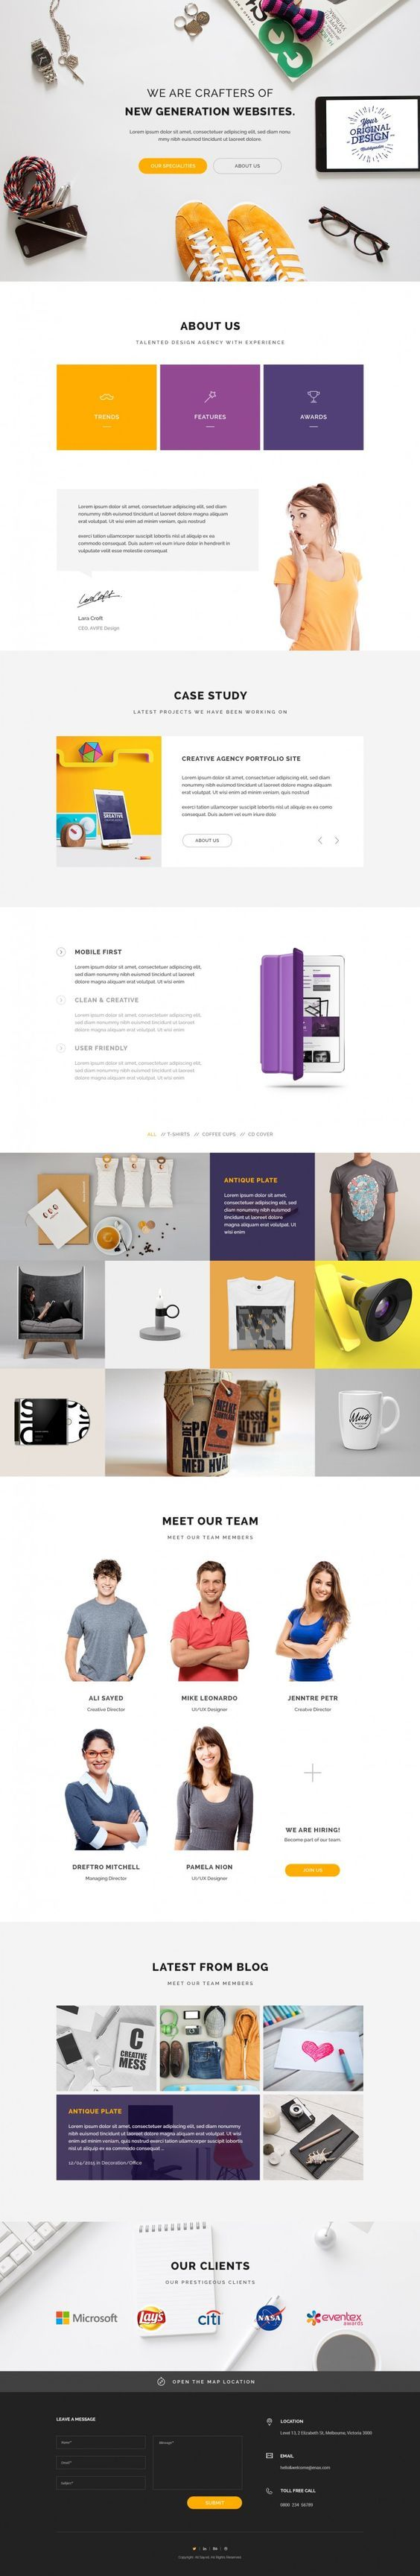 || Weekly web design Inspiration for everyone! Introducing Moire Studios a thriving website and graphic design studio. Feel Free to Follow us @moirestudiosjkt to see more remarkable pins like this. Or visit our website www.moirestudiosjkt.com to learn more about us. #WebDesign #WebsiteInspiration #WebDesignInspiration ||: